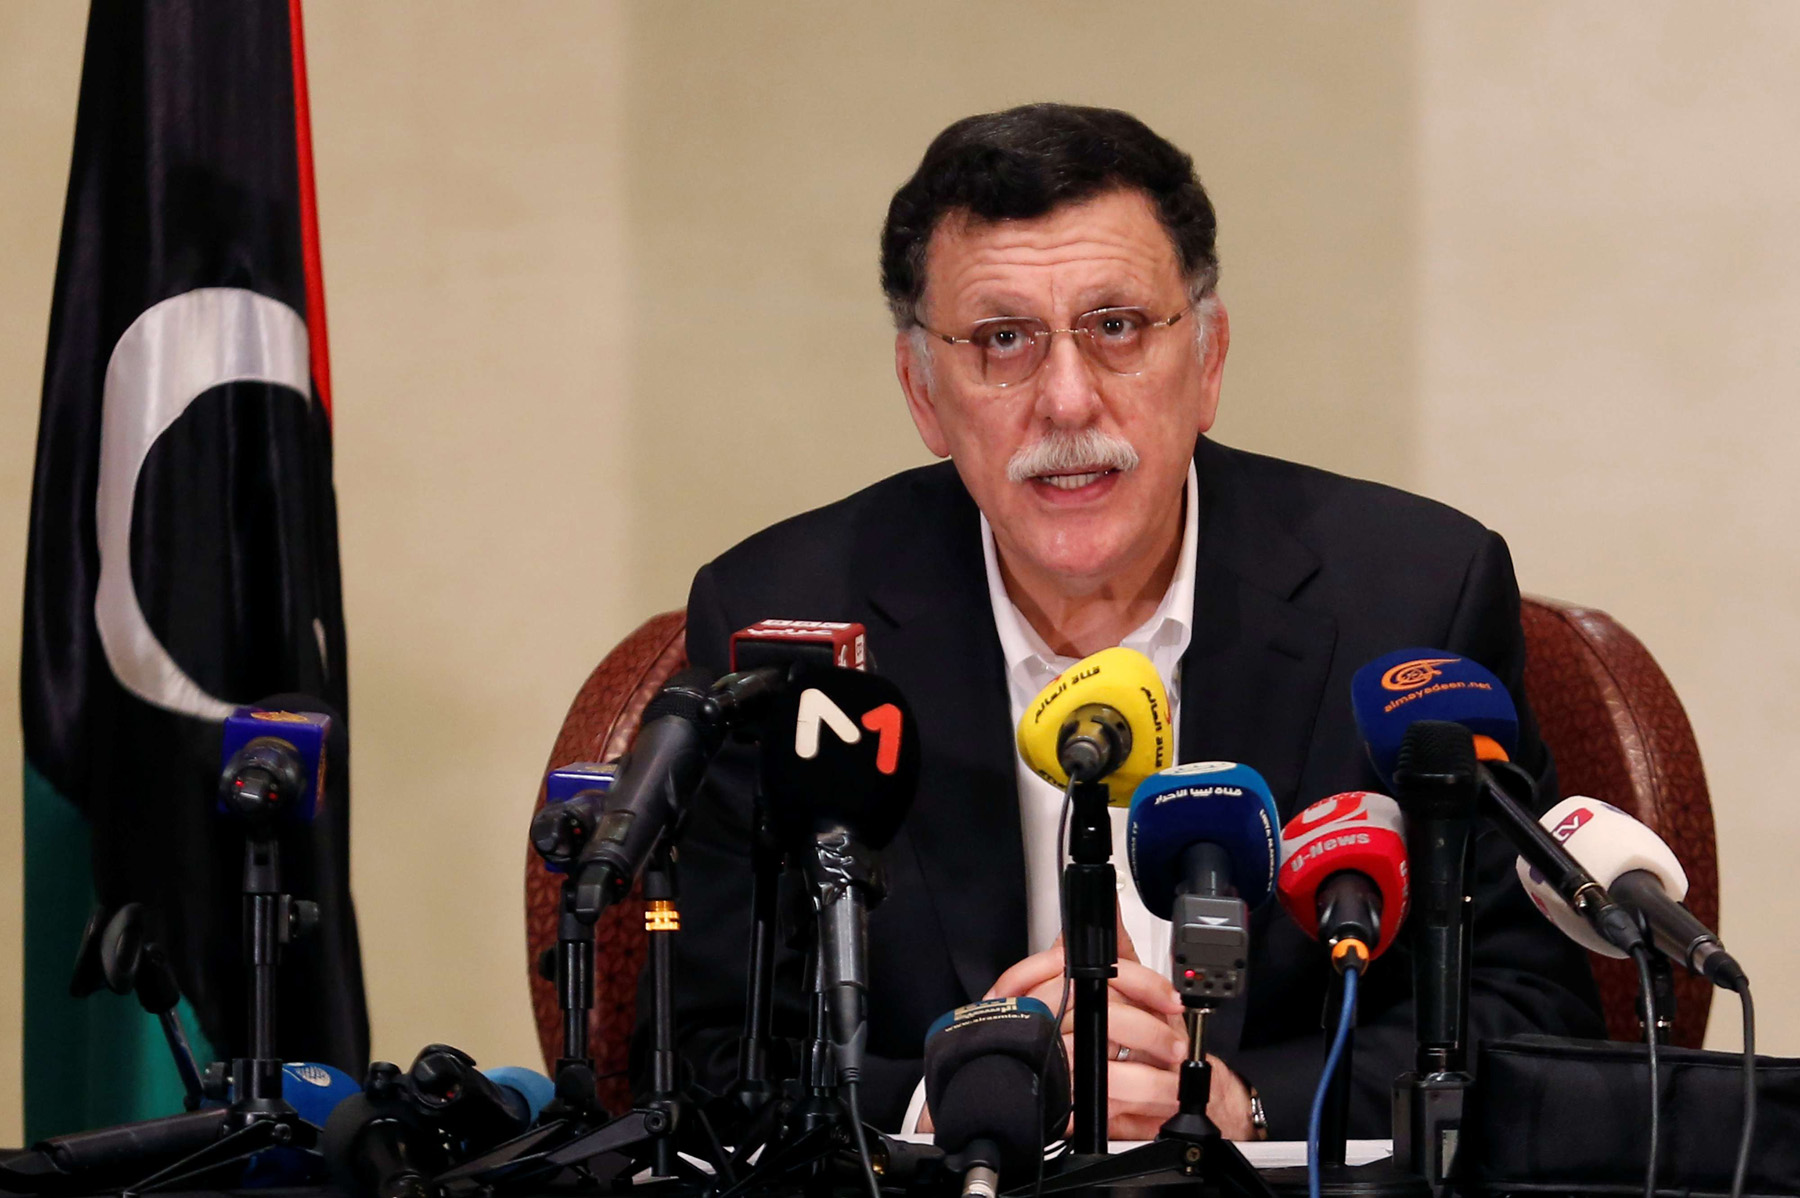 Libyan Prime Minister Fayez al-Sarraj speaks during a news conference in Tunis, Tunisia, May 22, 2019. (Reuters)